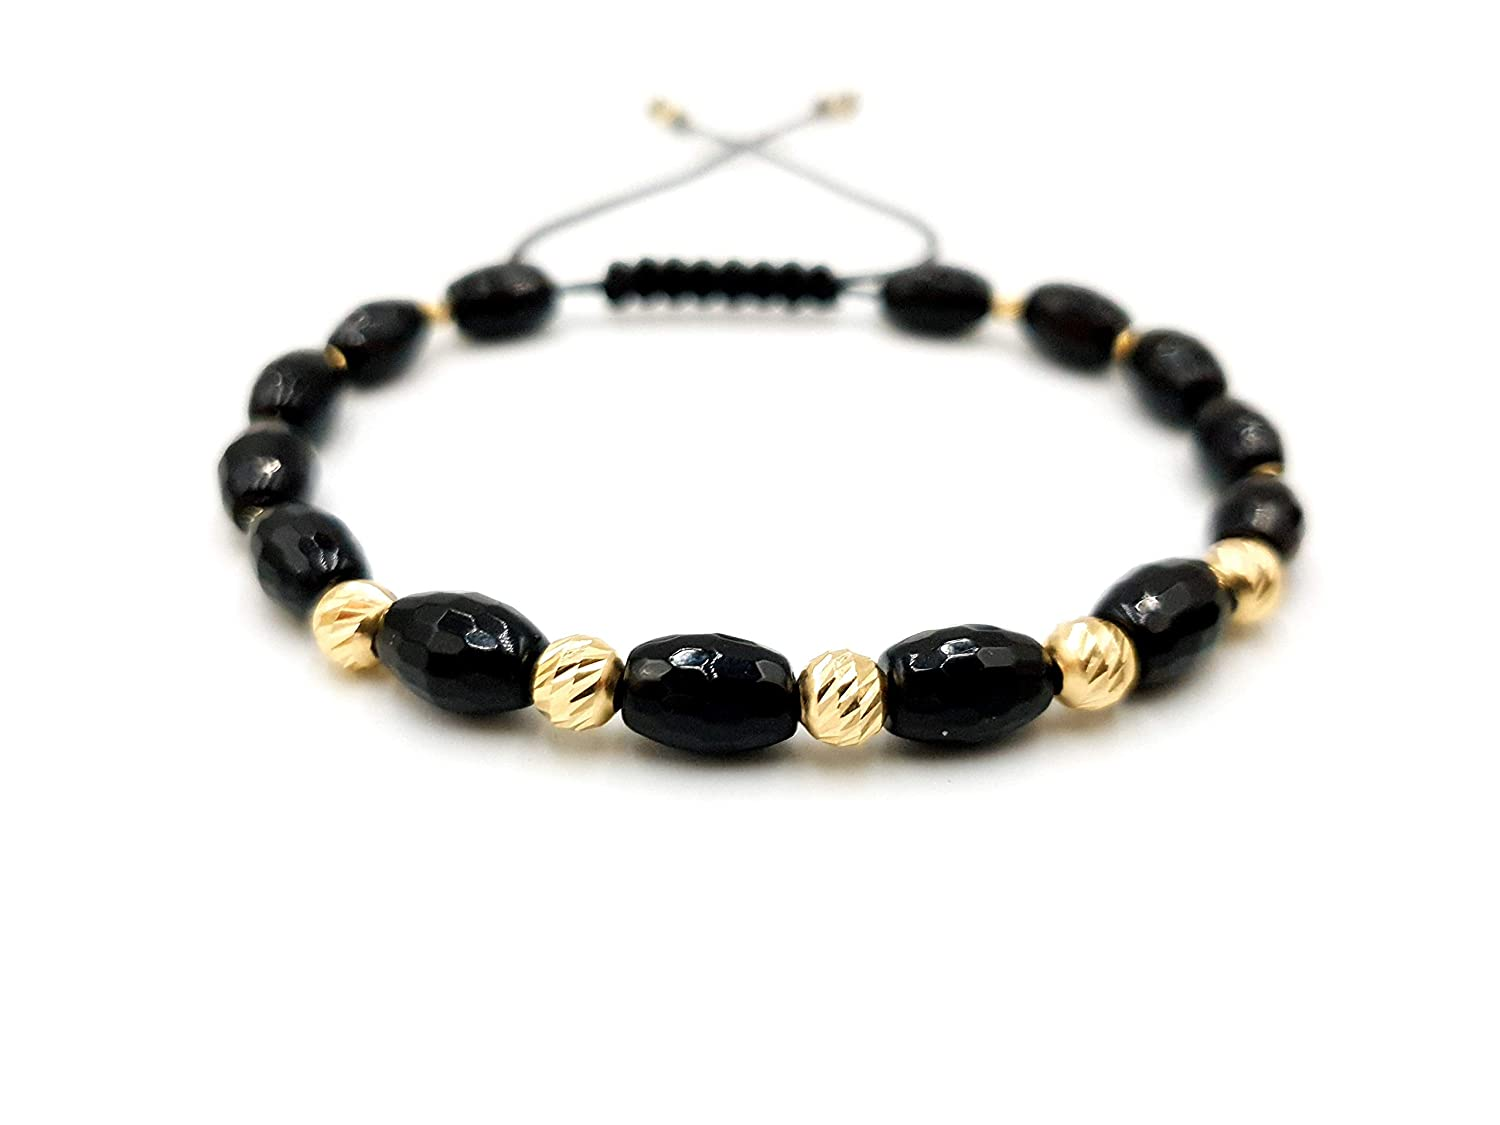 14k yellow Gold Max 54% OFF Bracelet and Great interest Natural beads Stones Onyx